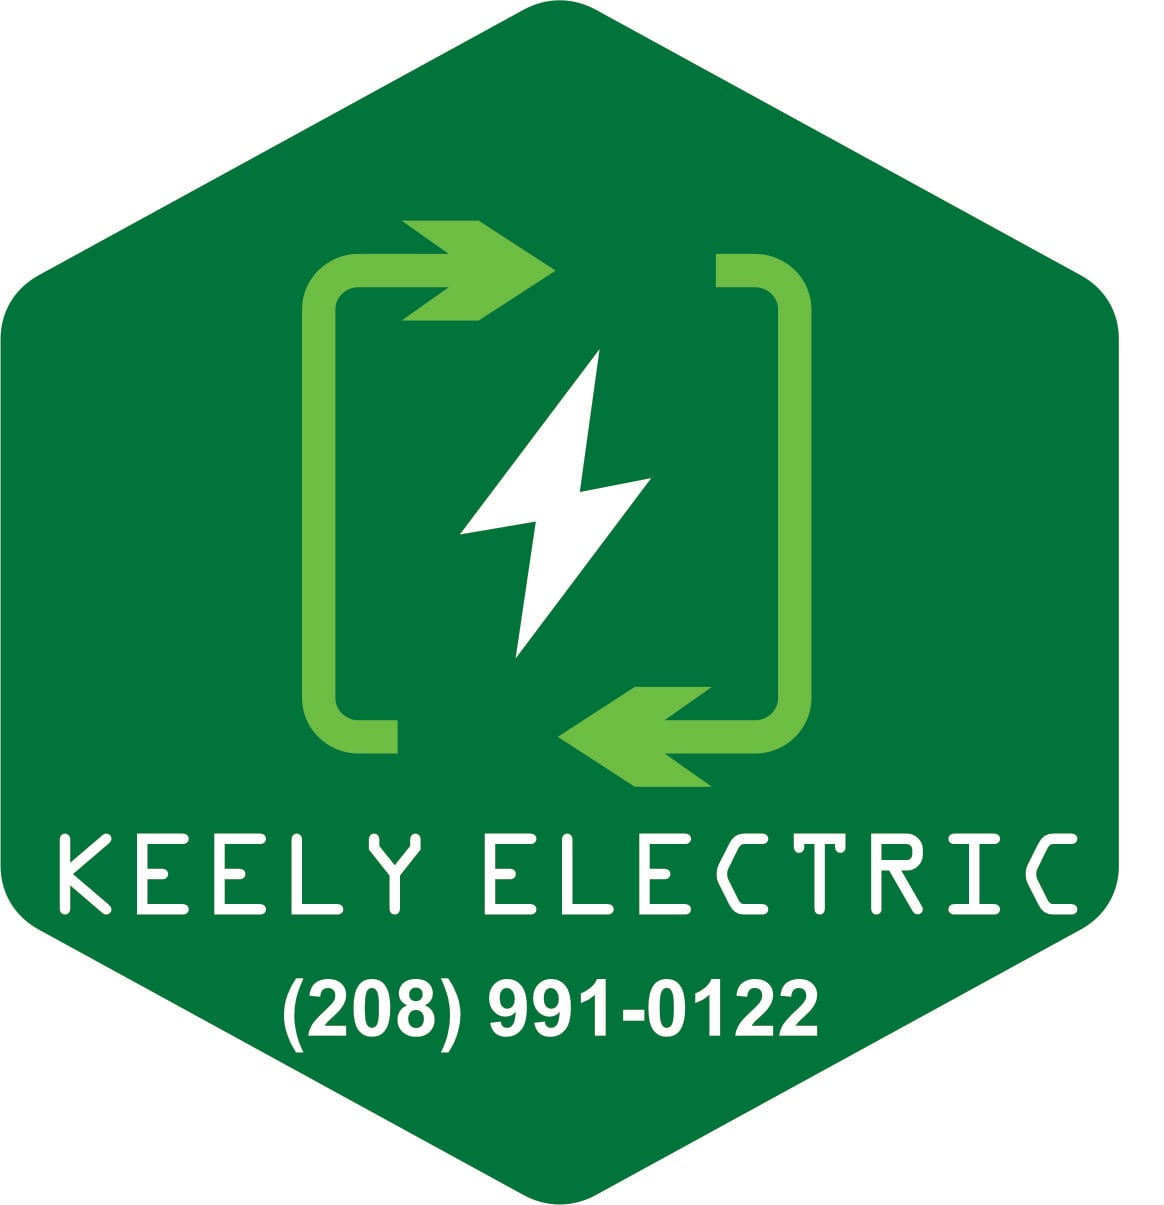 Keely Electric